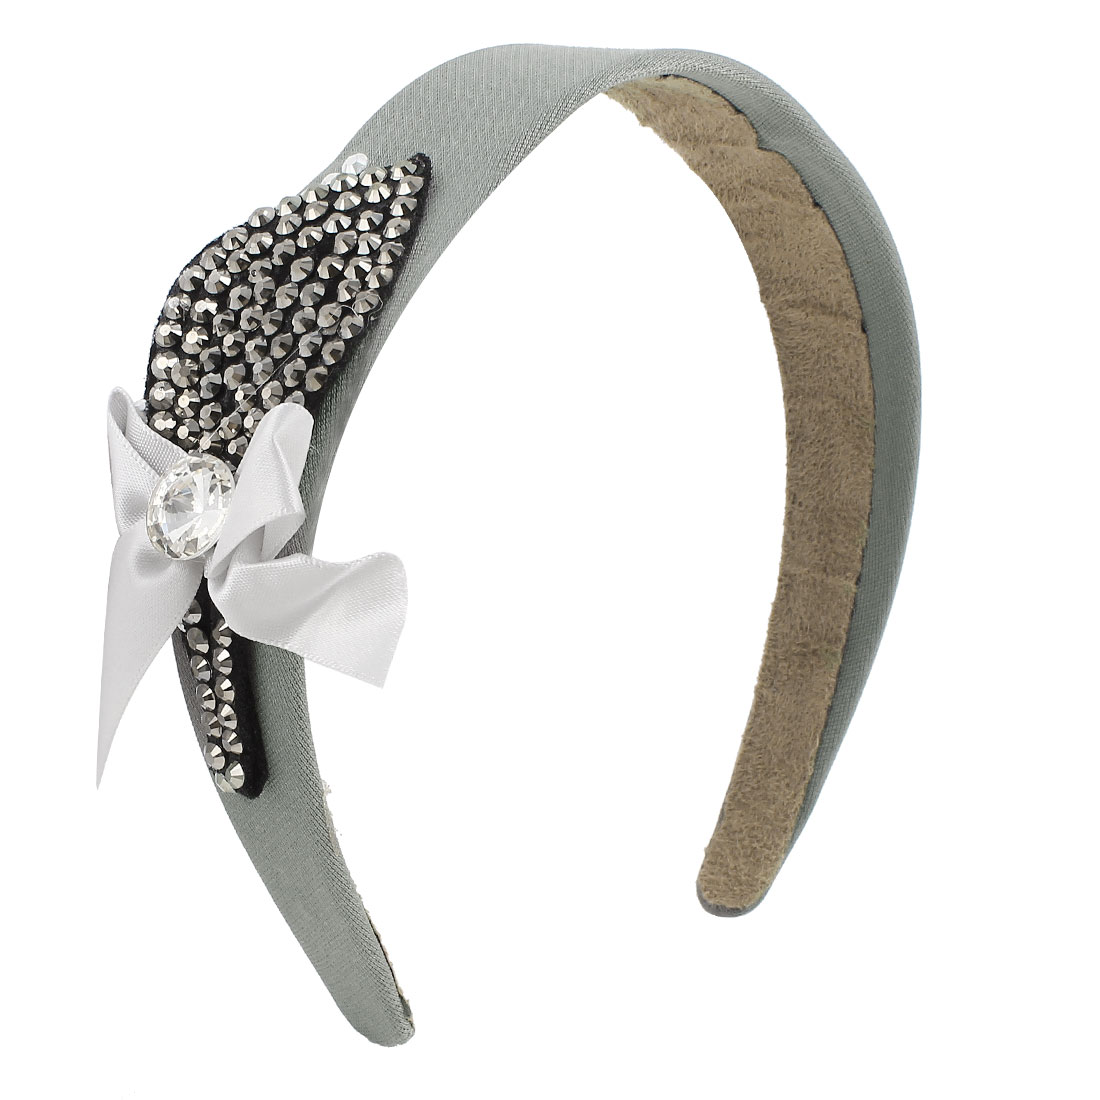 Rhinestone Inlaid Leaf Decor Hairband Headband Hair Hoop Gray for Women